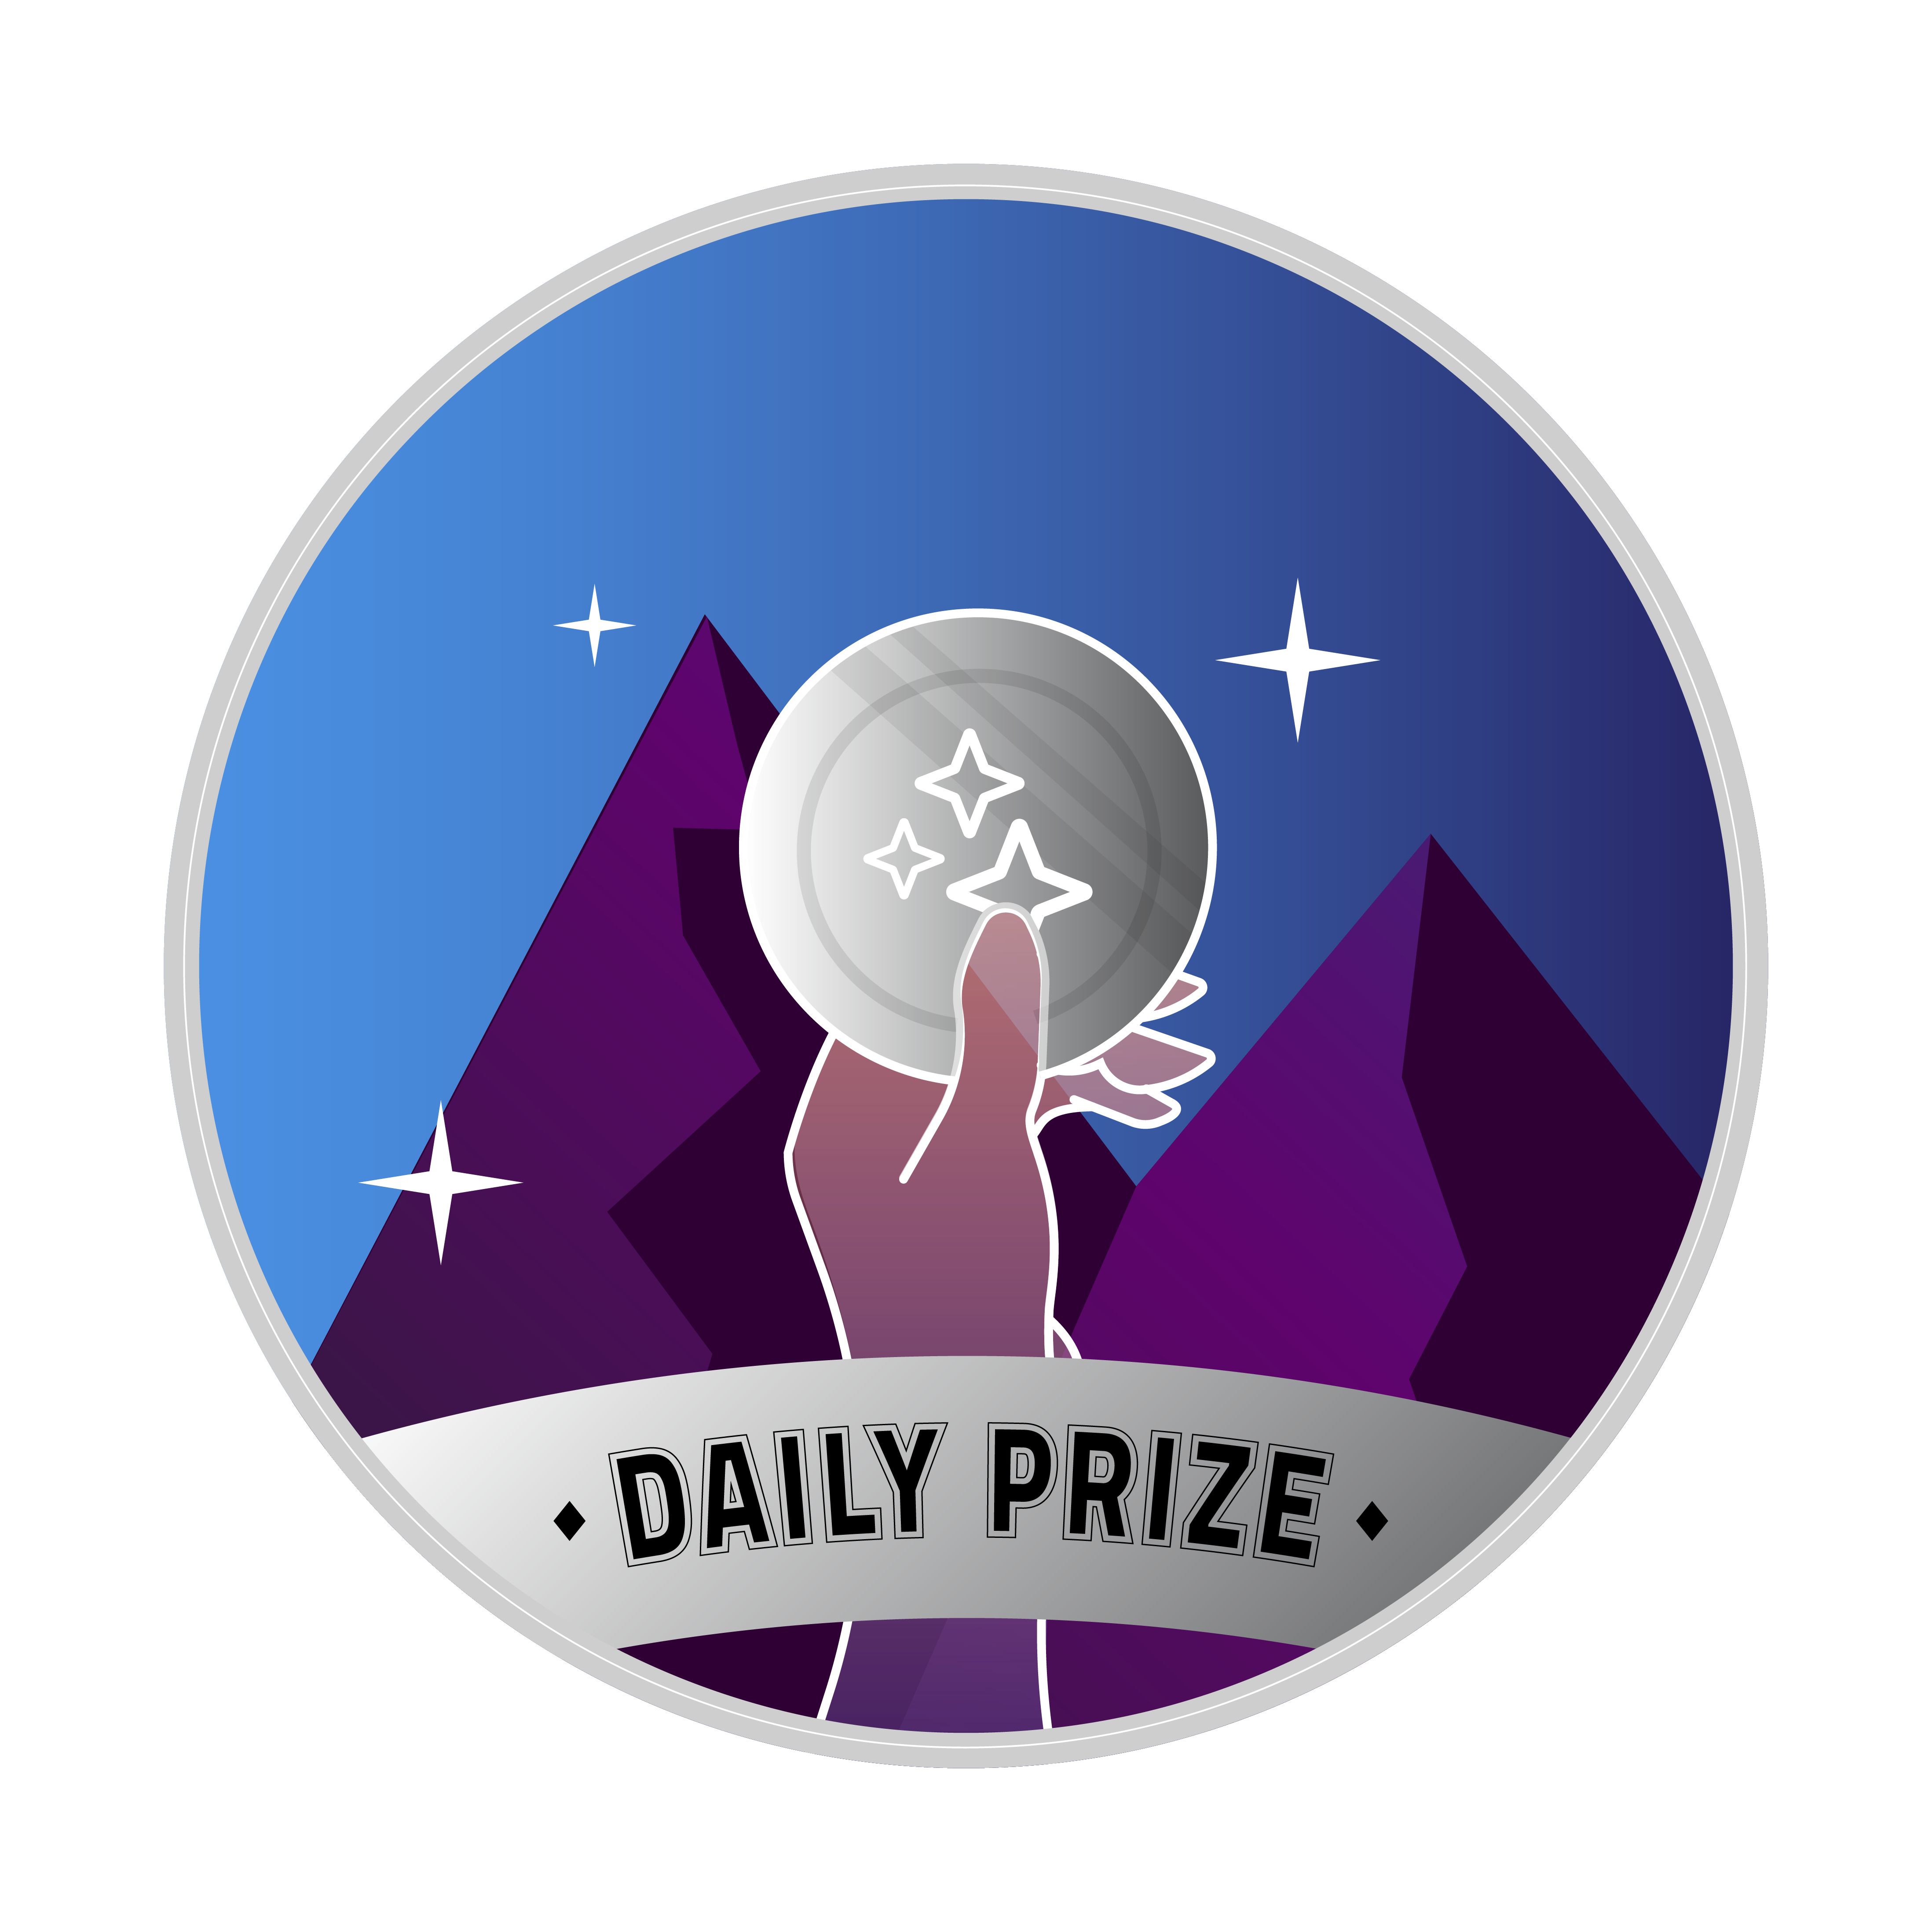 daily-prize_4x.png